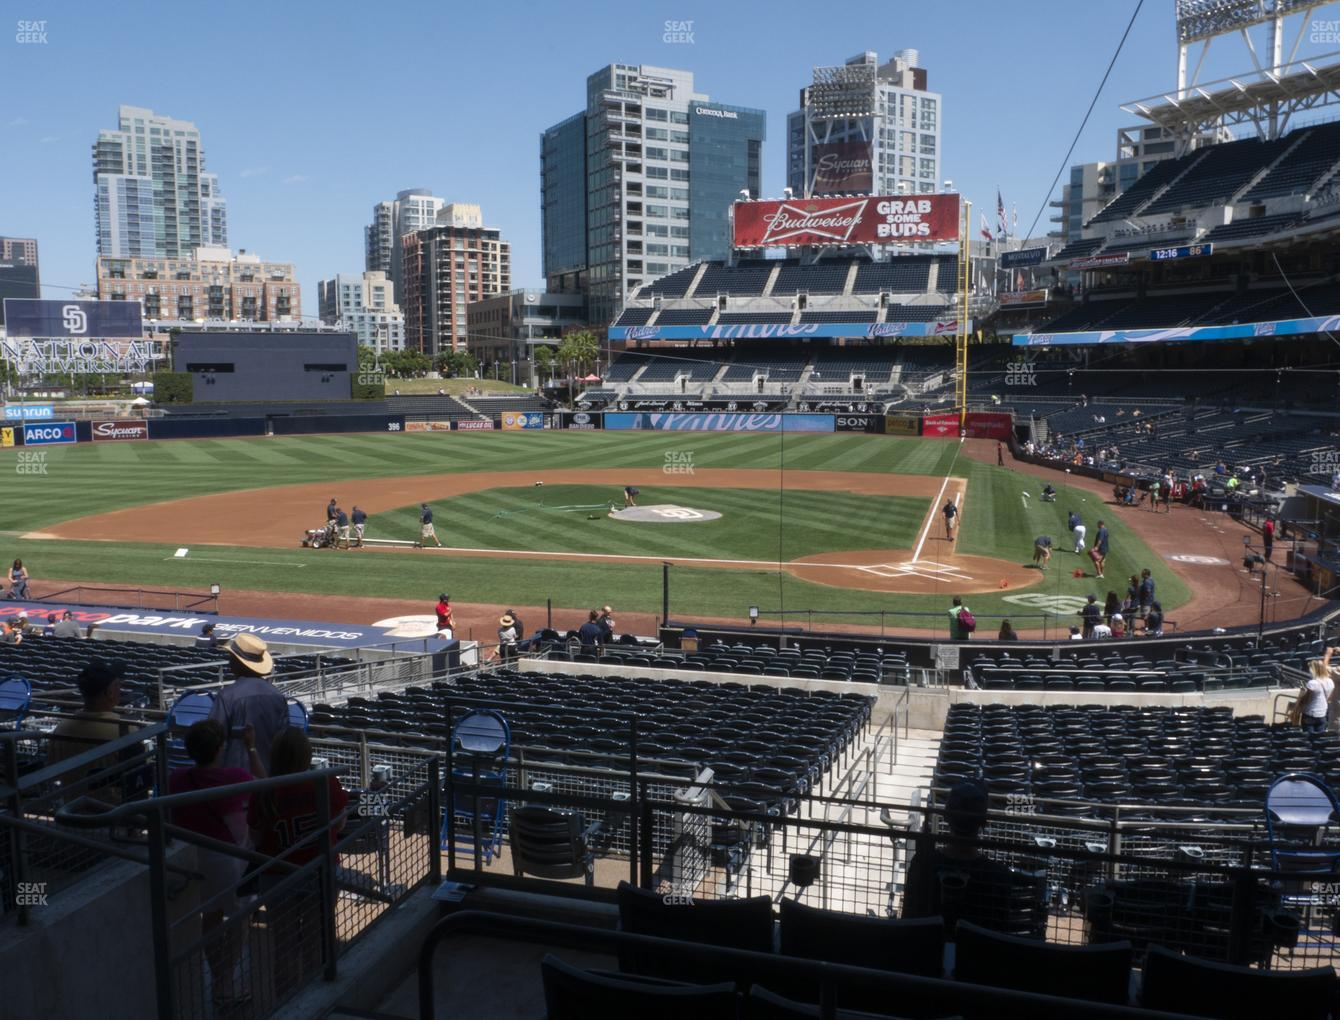 San Diego Padres at Petco Park Premier Club B View